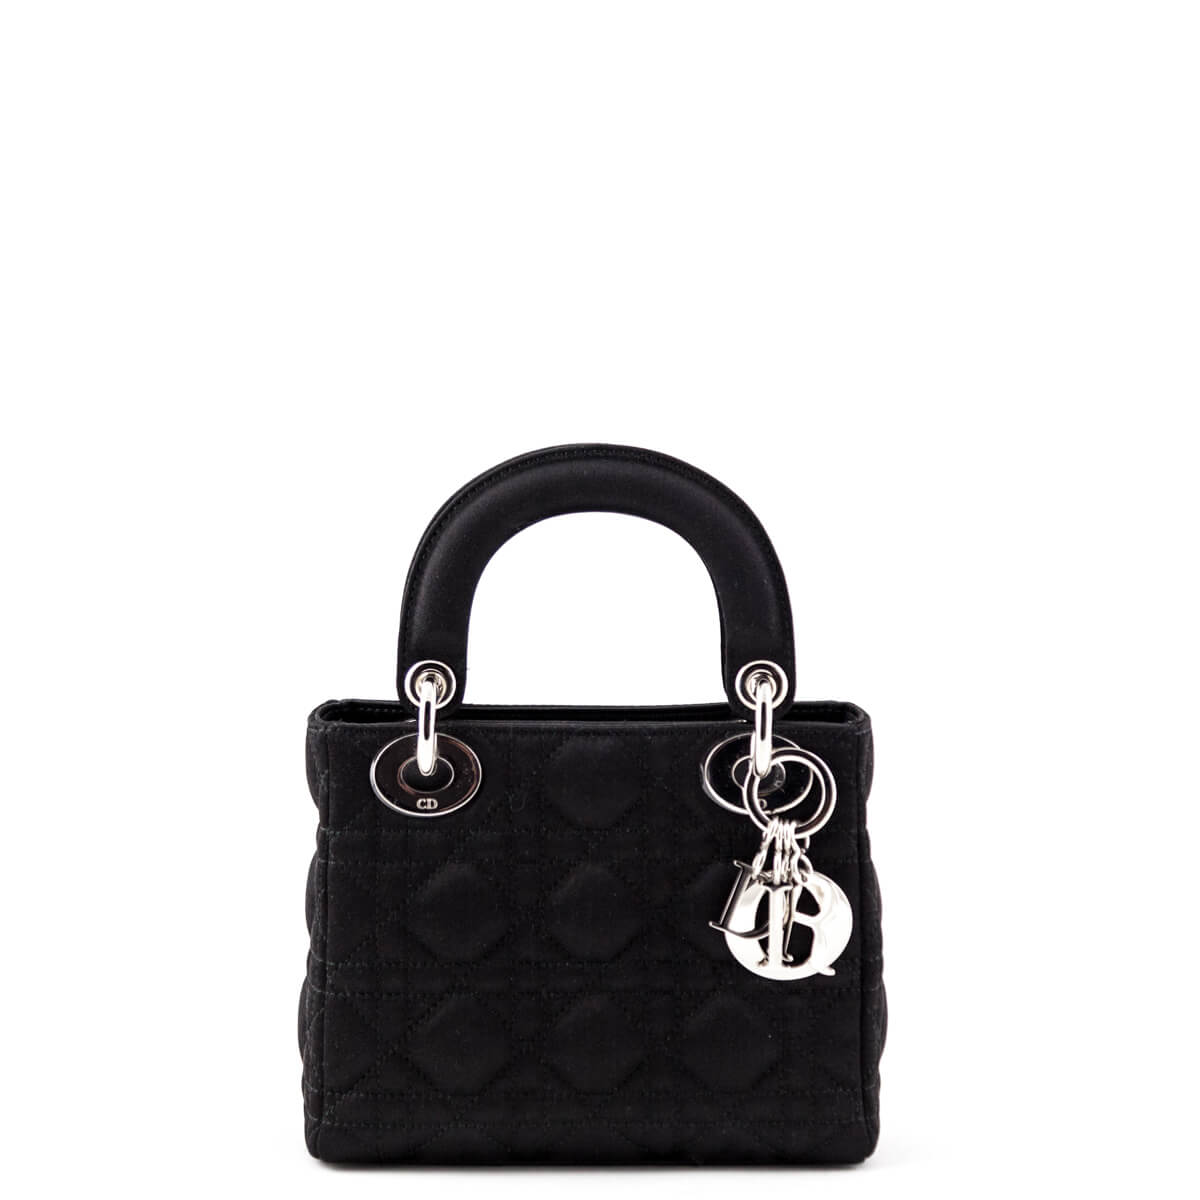 b9c41b2140b Dior Black Satin Cannage Mini Lady Dior Bag - LOVE that BAG - Preowned  Authentic Designer ...